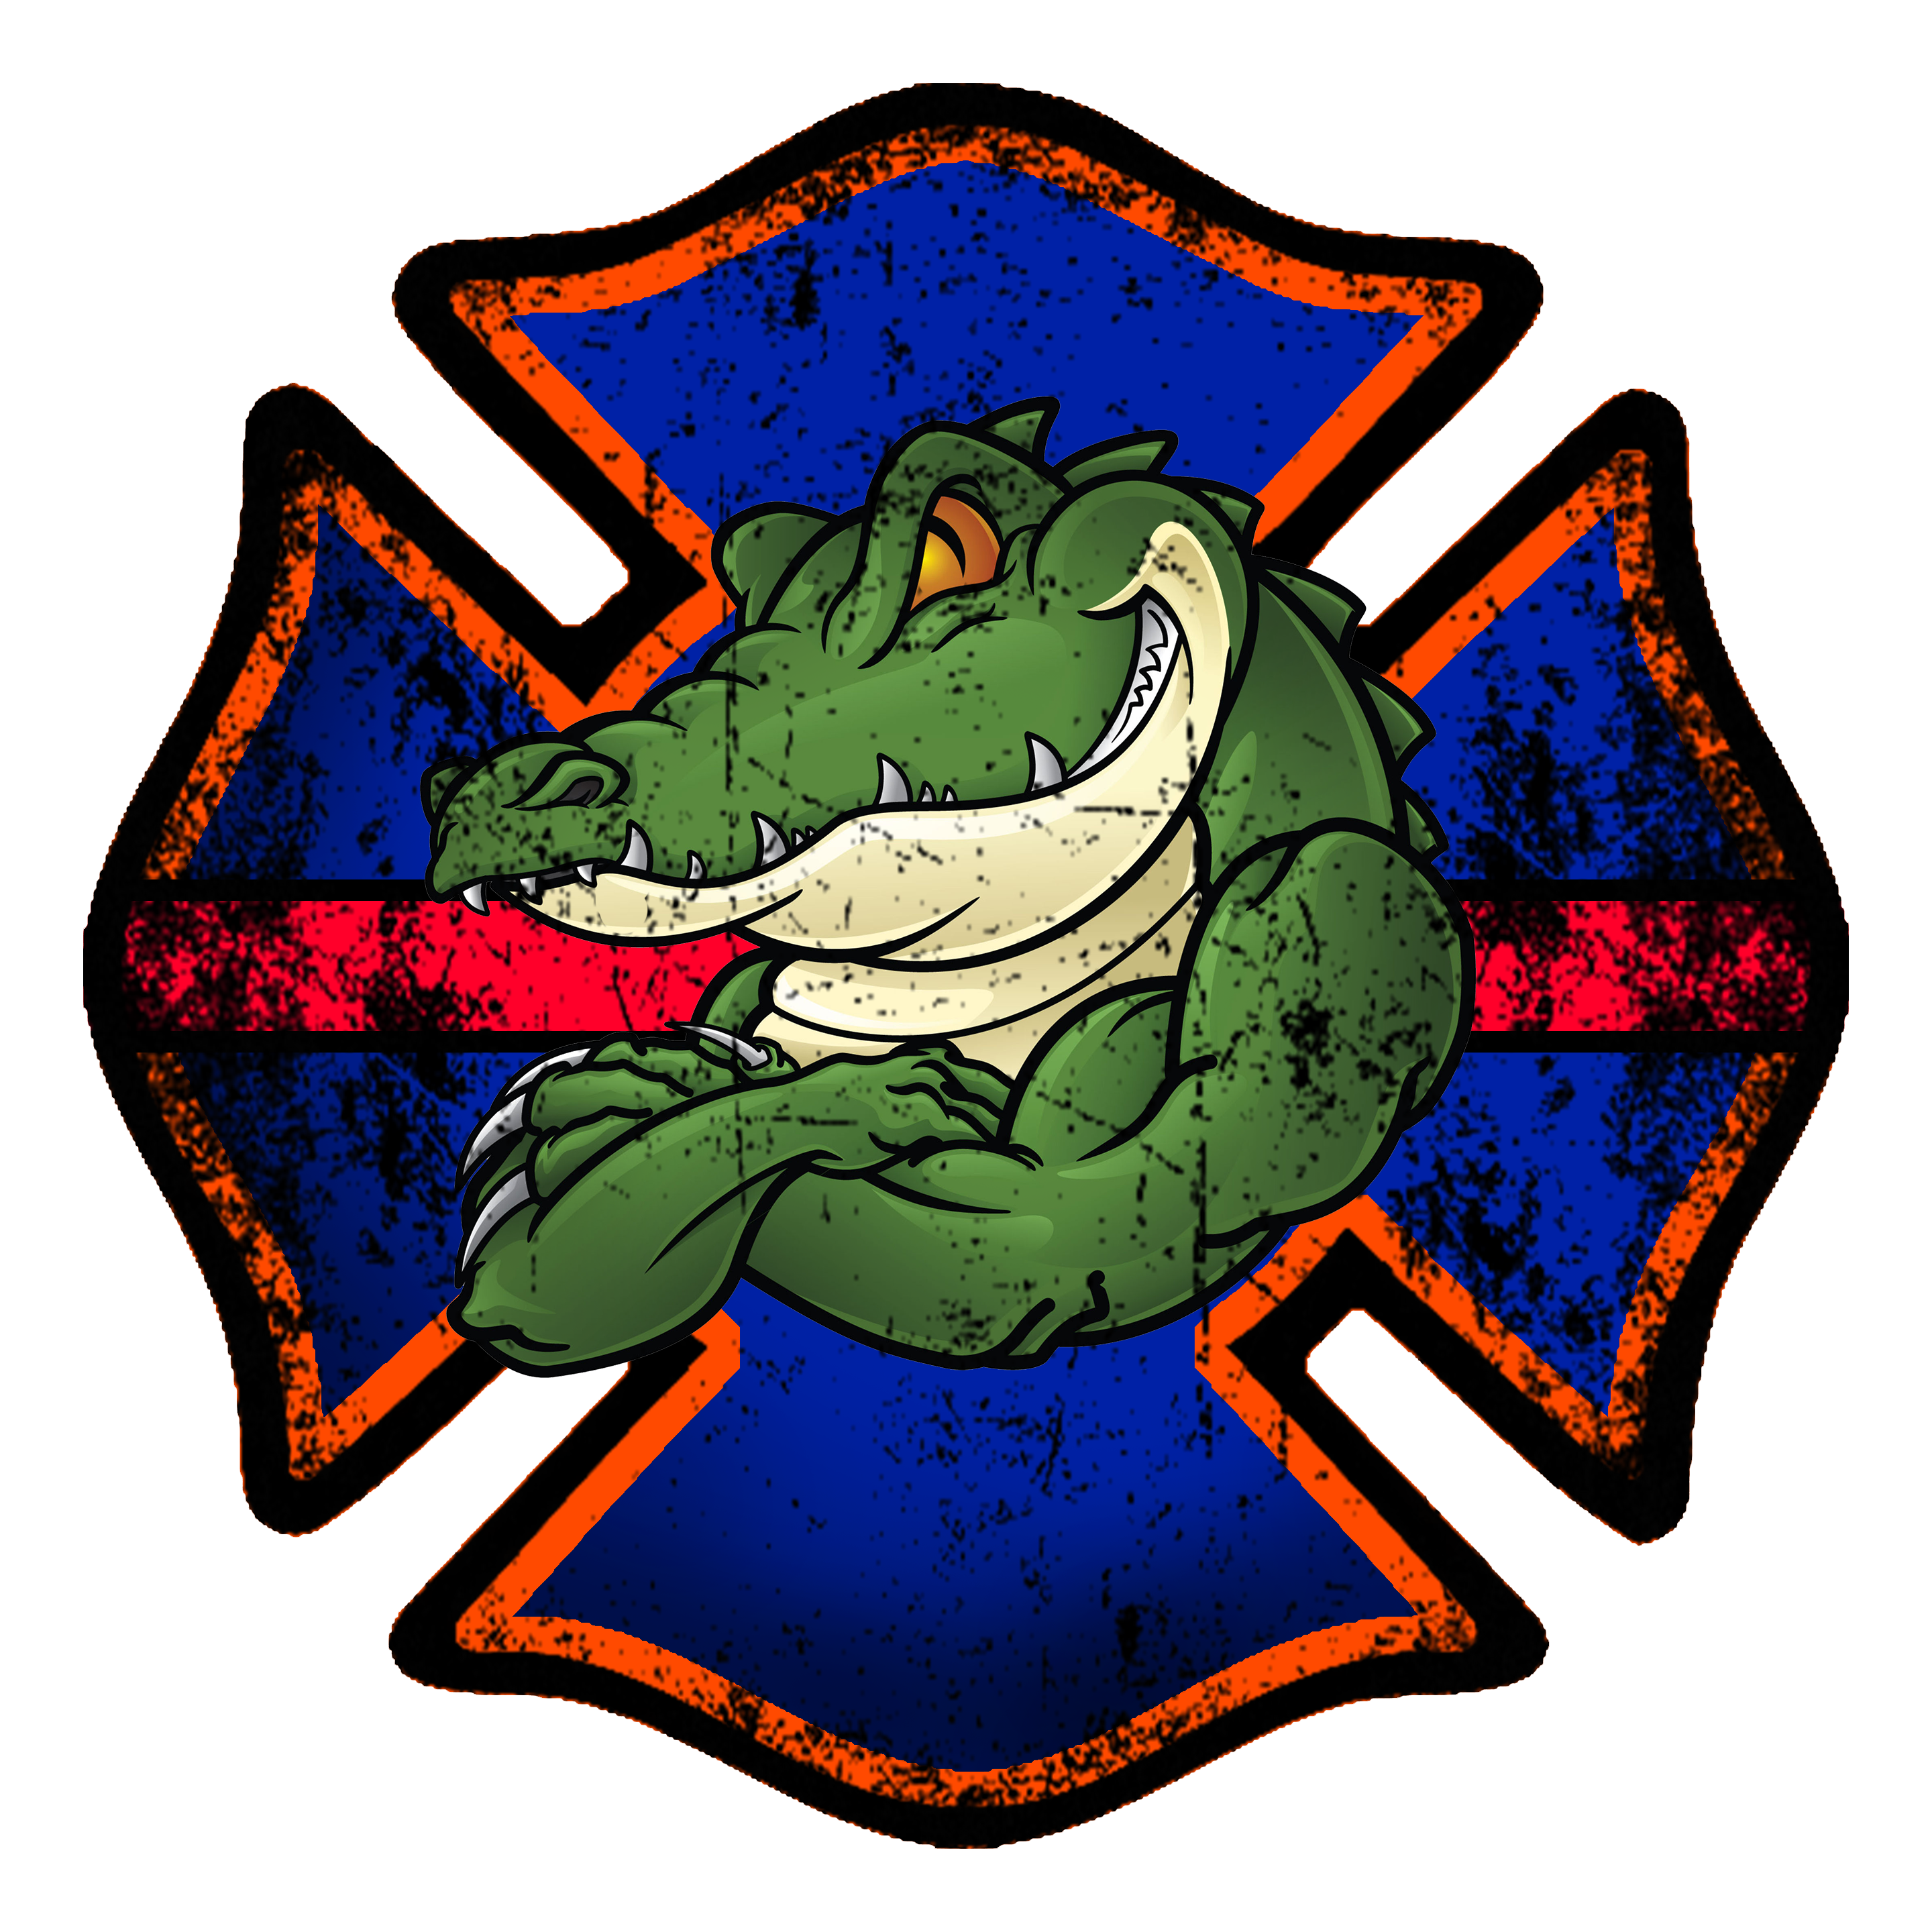 Firefighter cross clipart royalty free library Florida Gator Firefighter Decal - PRE-ORDER | Products | Pinterest ... royalty free library